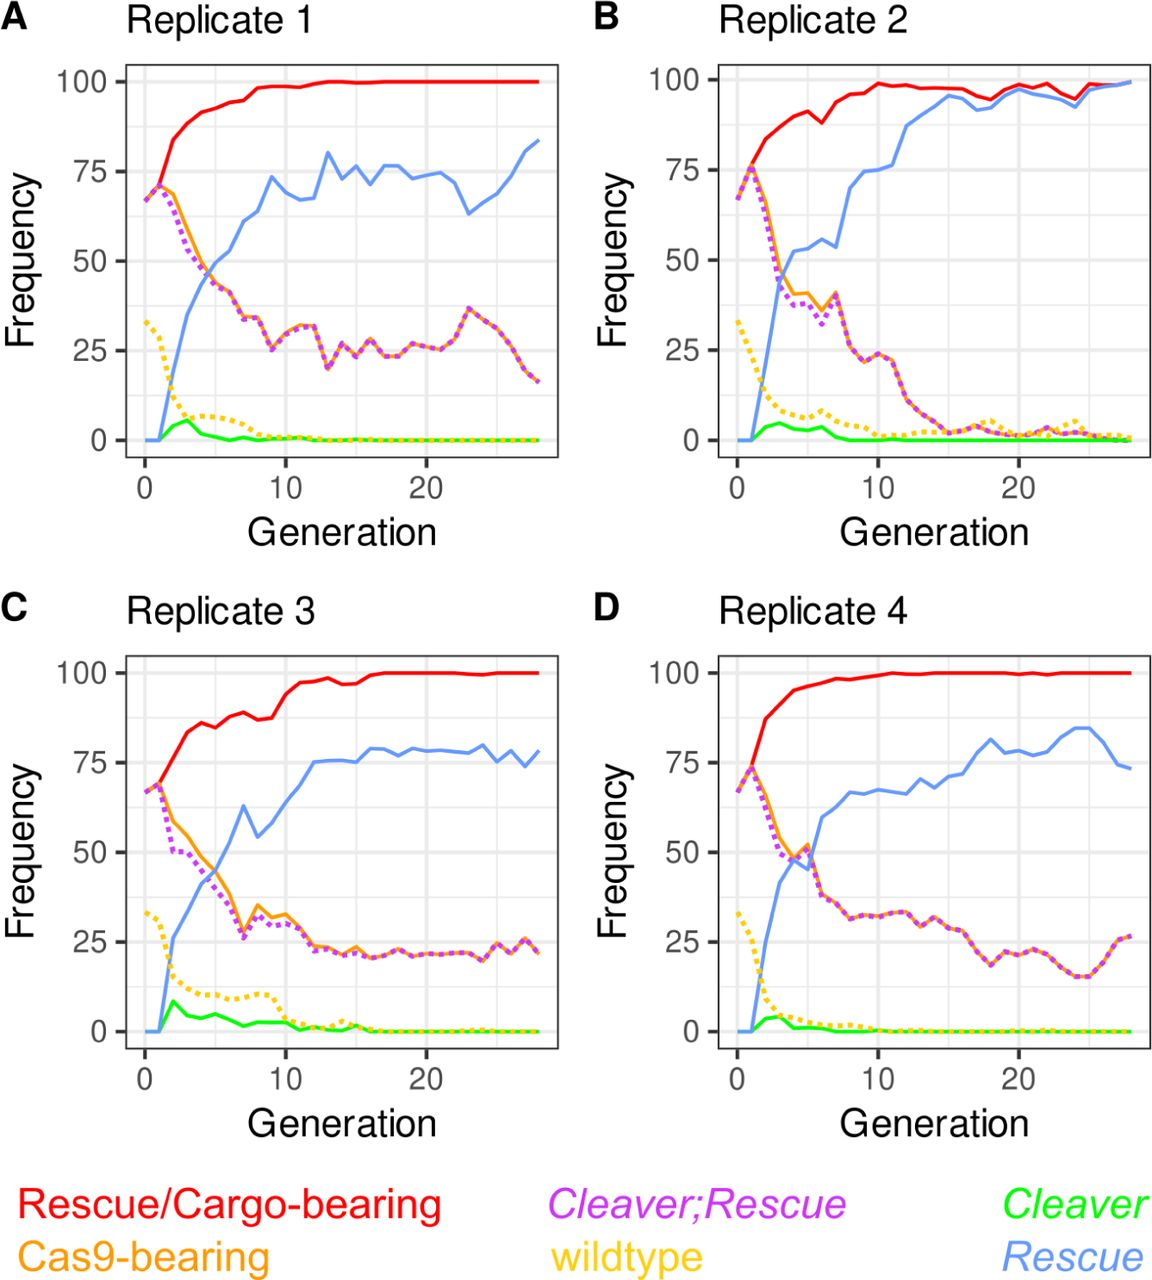 Drive outcomes with all the scored genotypes. Legend on top of panels with Rescue /Cargo-bearing in red, Cas9-bearing in orange, Cleaver/Rescue in violet, Cleaver -only in green, Rescue -only in blue, and WT in yellow. (A-D) Replicates A-D. WT and Cleaver;Rescue in dotted lines for visibility.